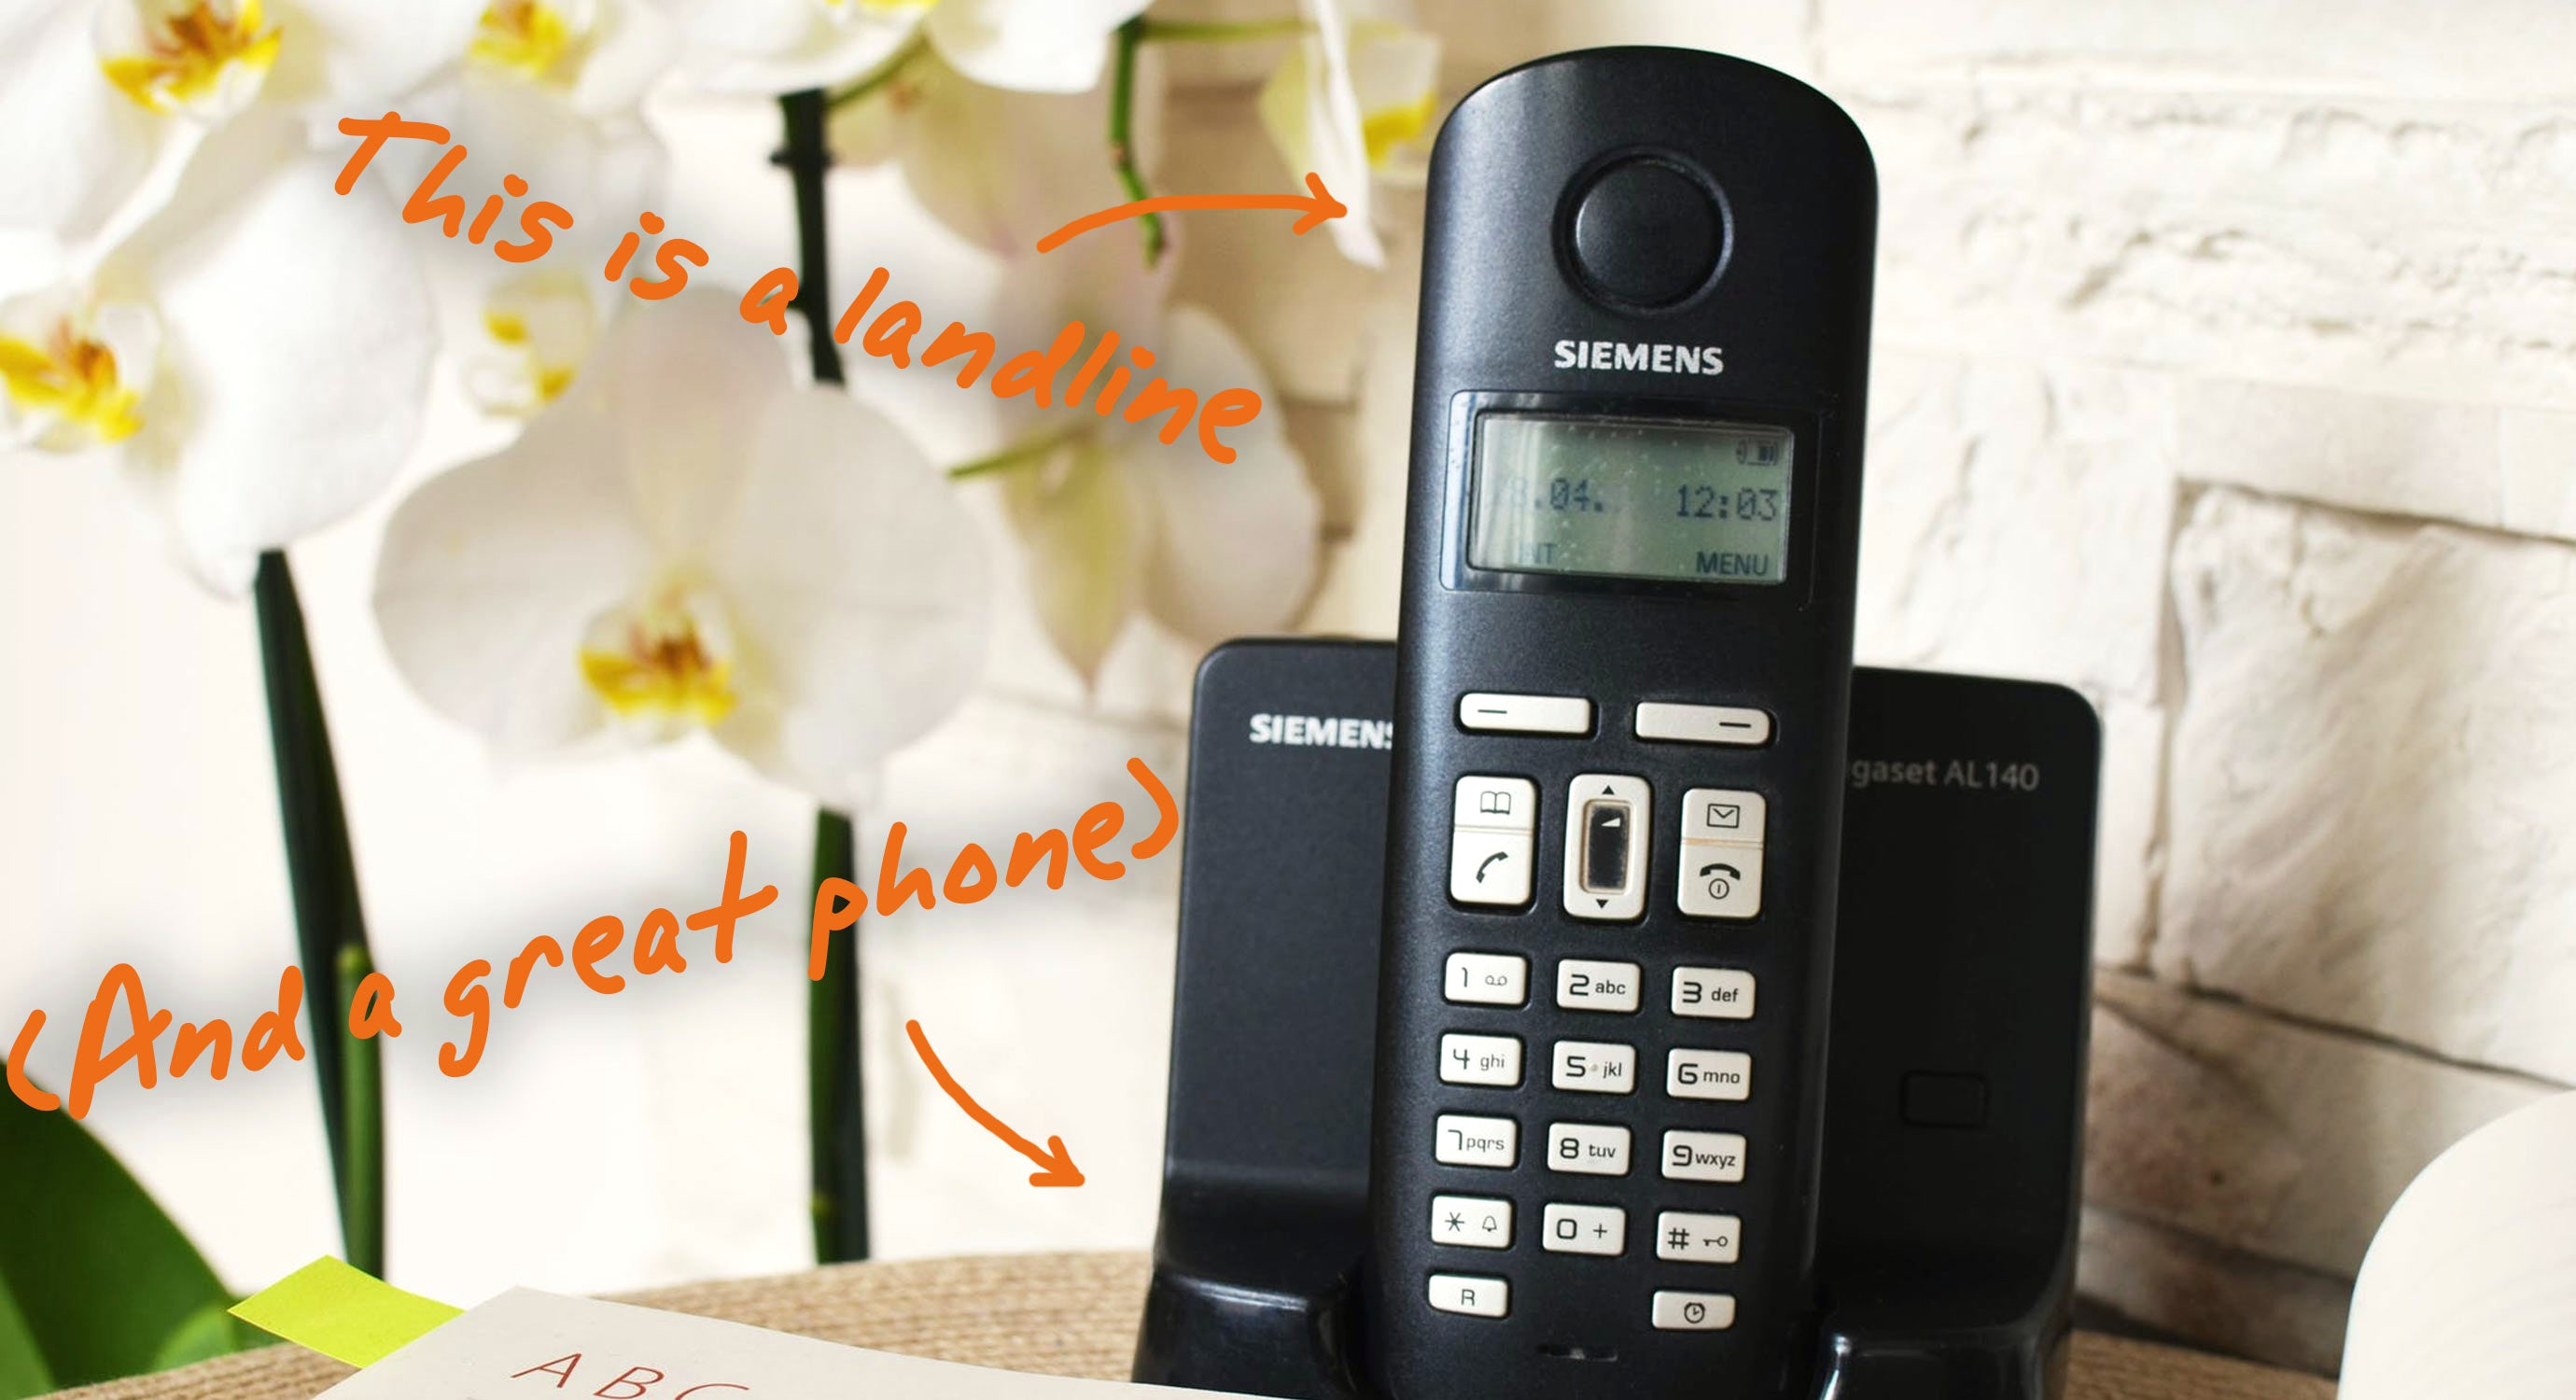 a cordless landline phone in use